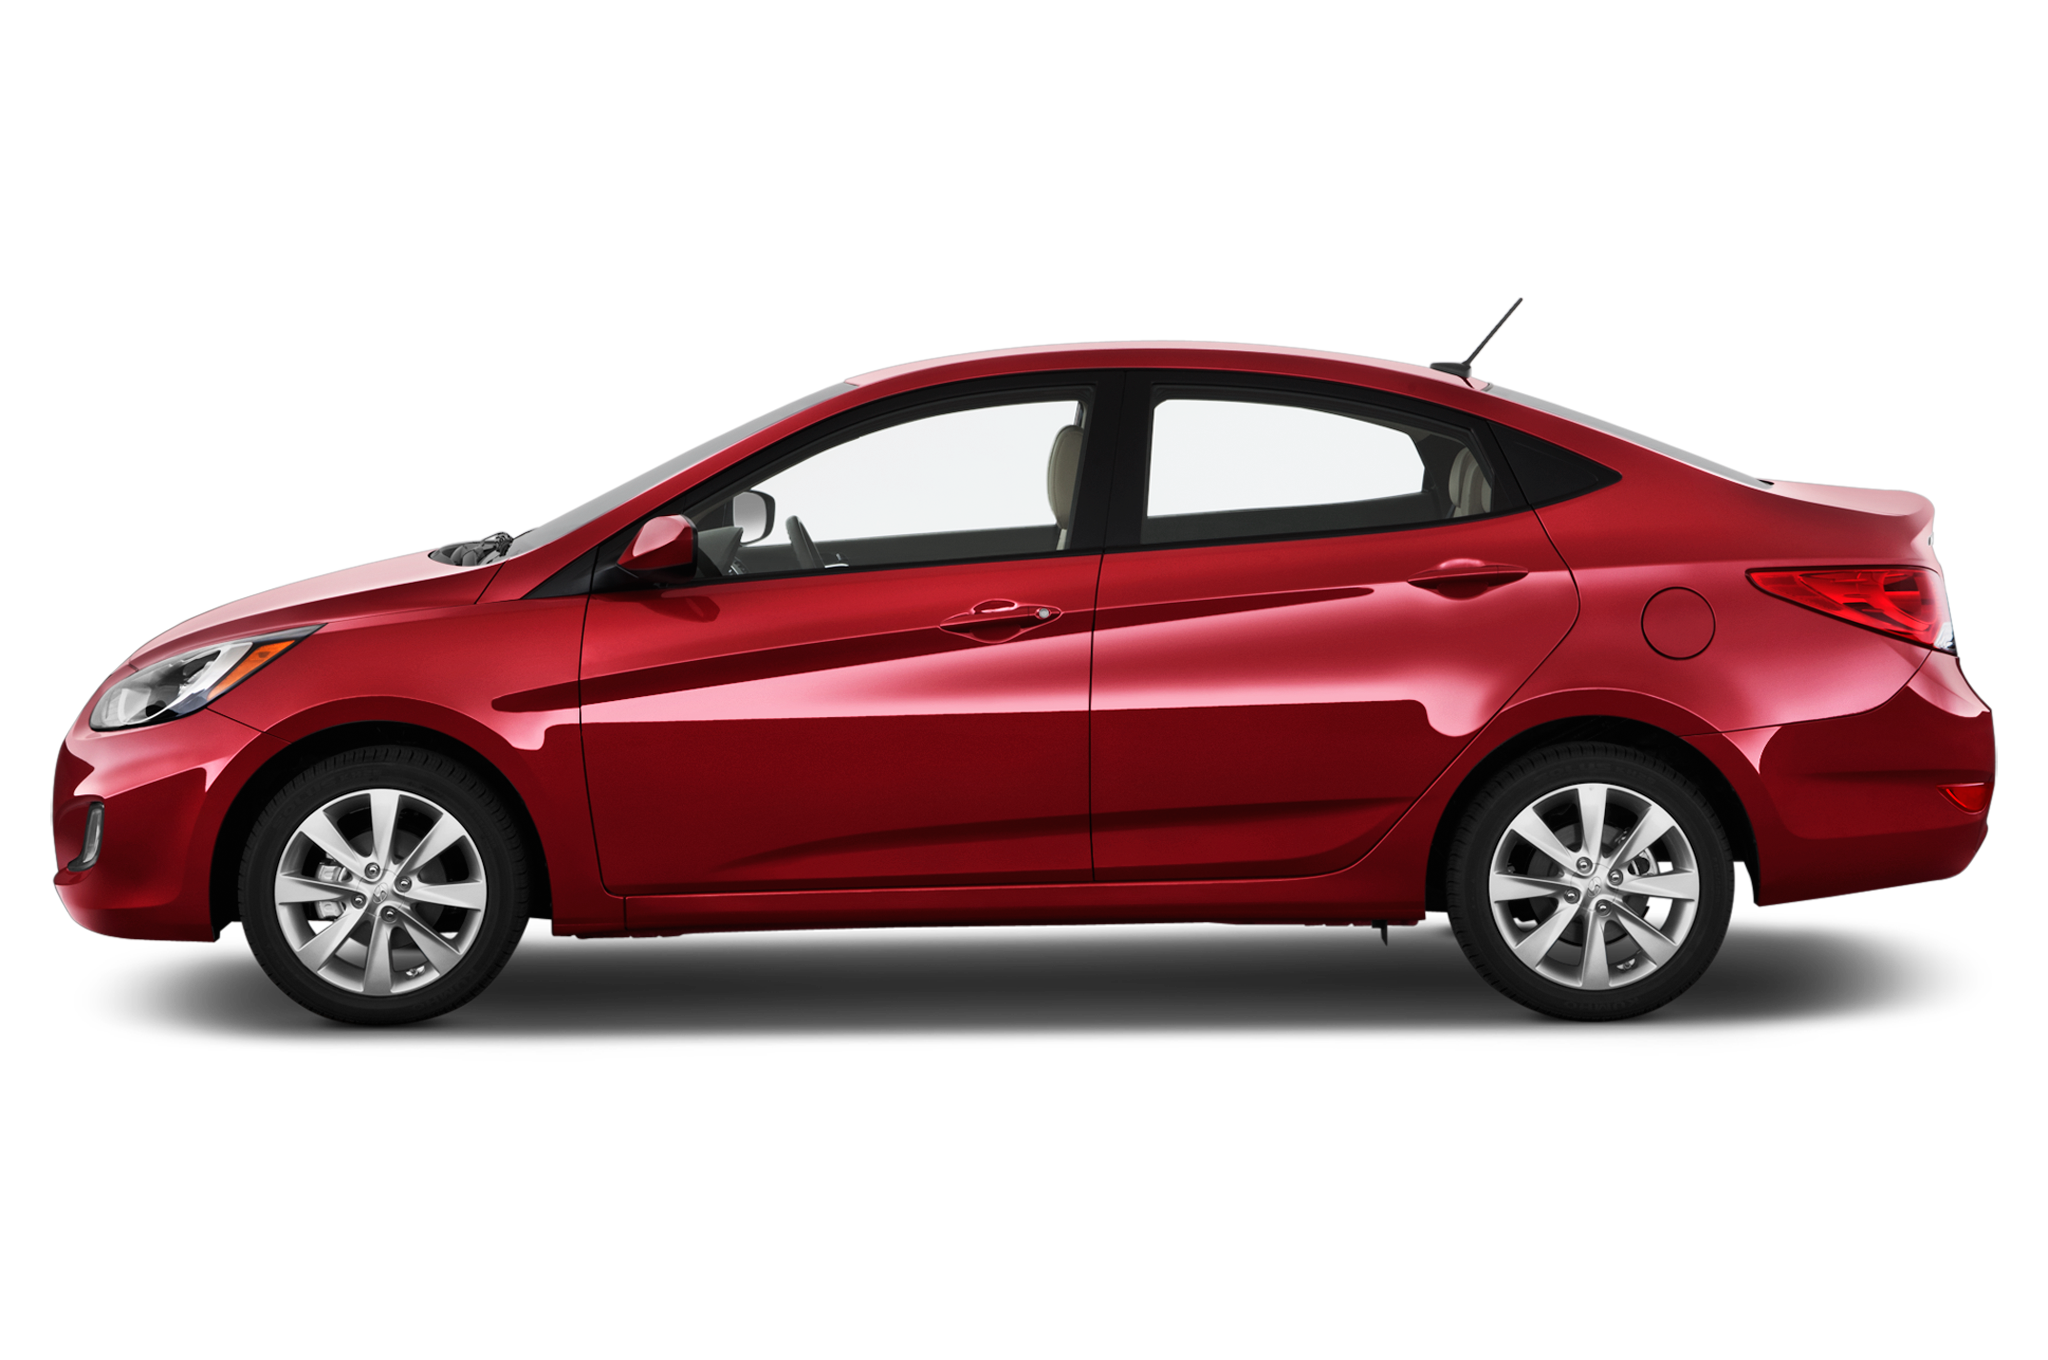 2013 Hyundai Accent Starts At 15320 Elantra Gt 19170 Heated Seats In A 2012 Diagram 55 89